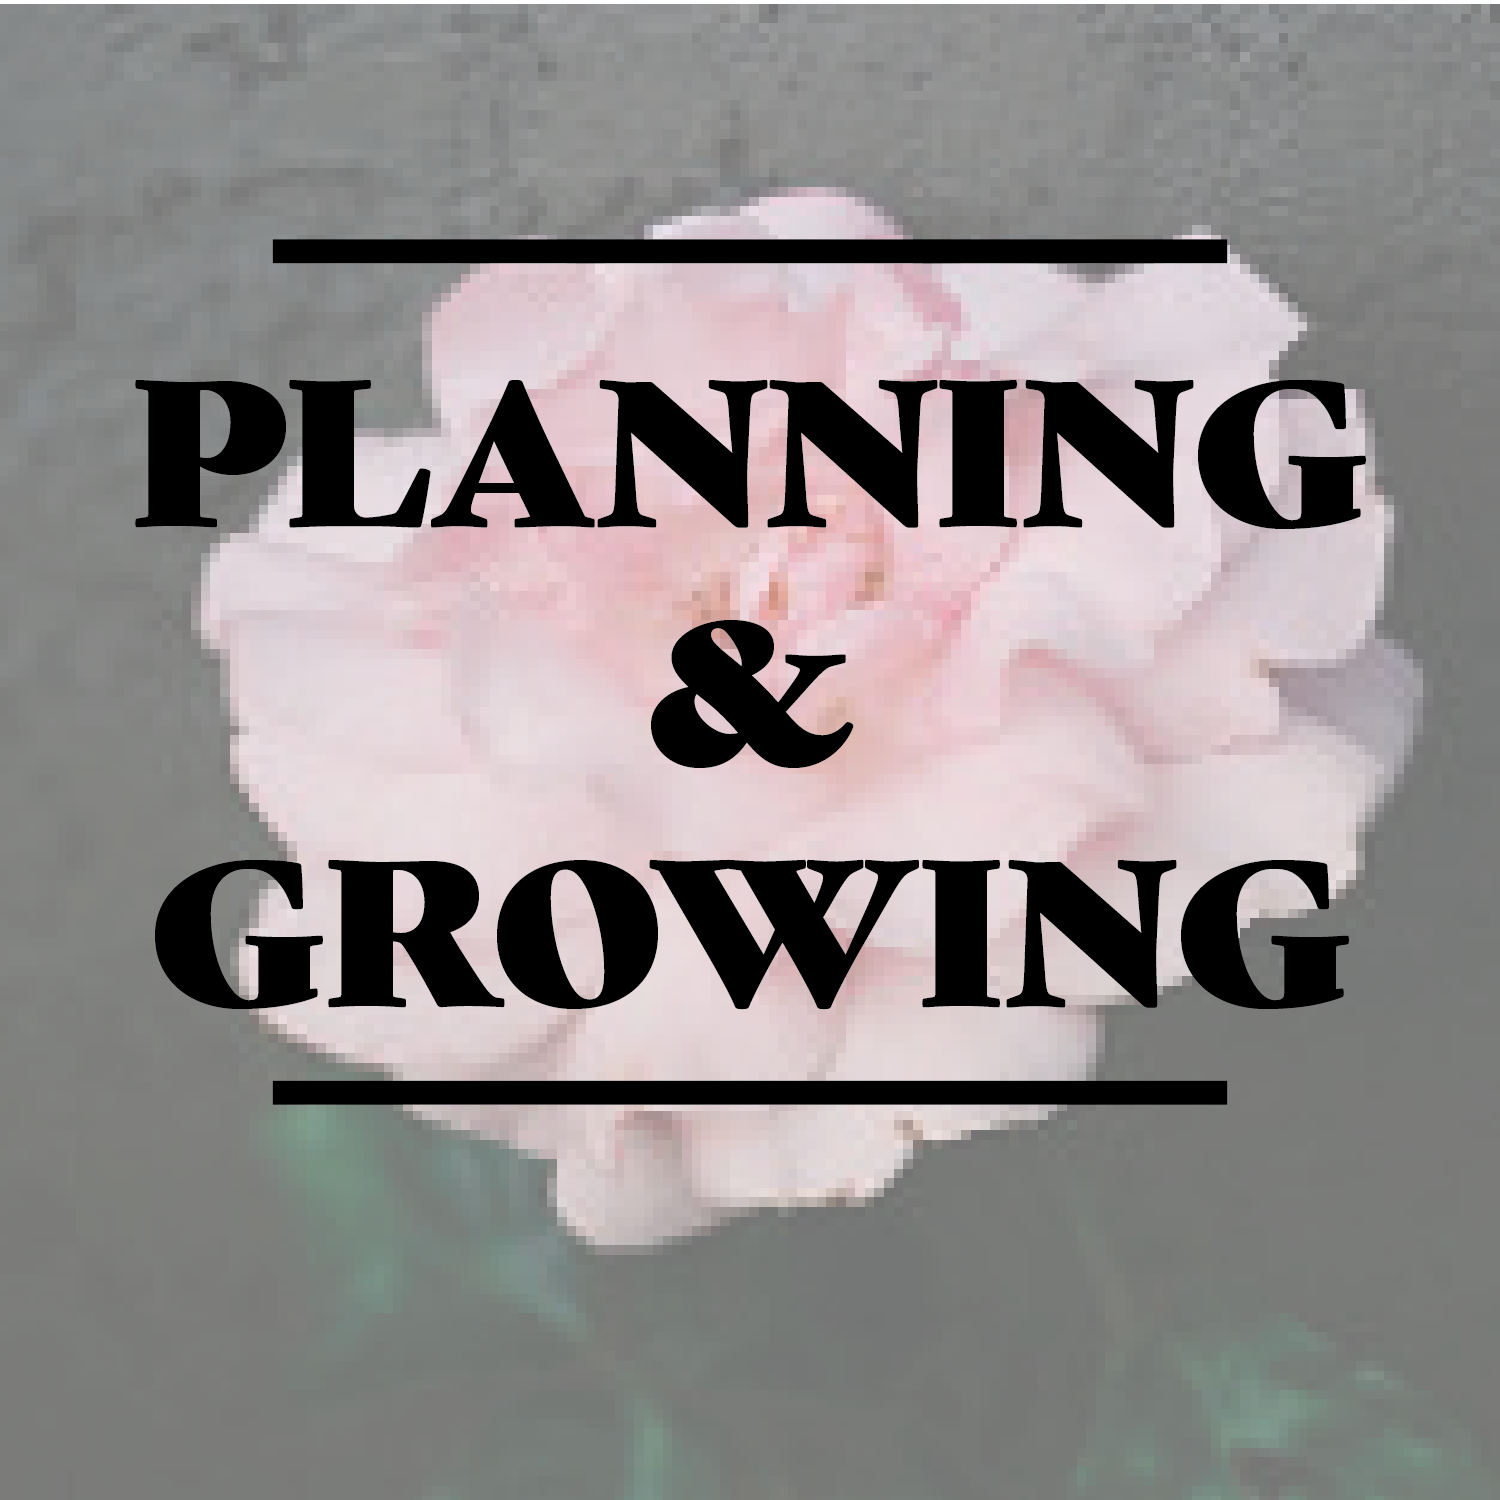 Planning and Growing Image